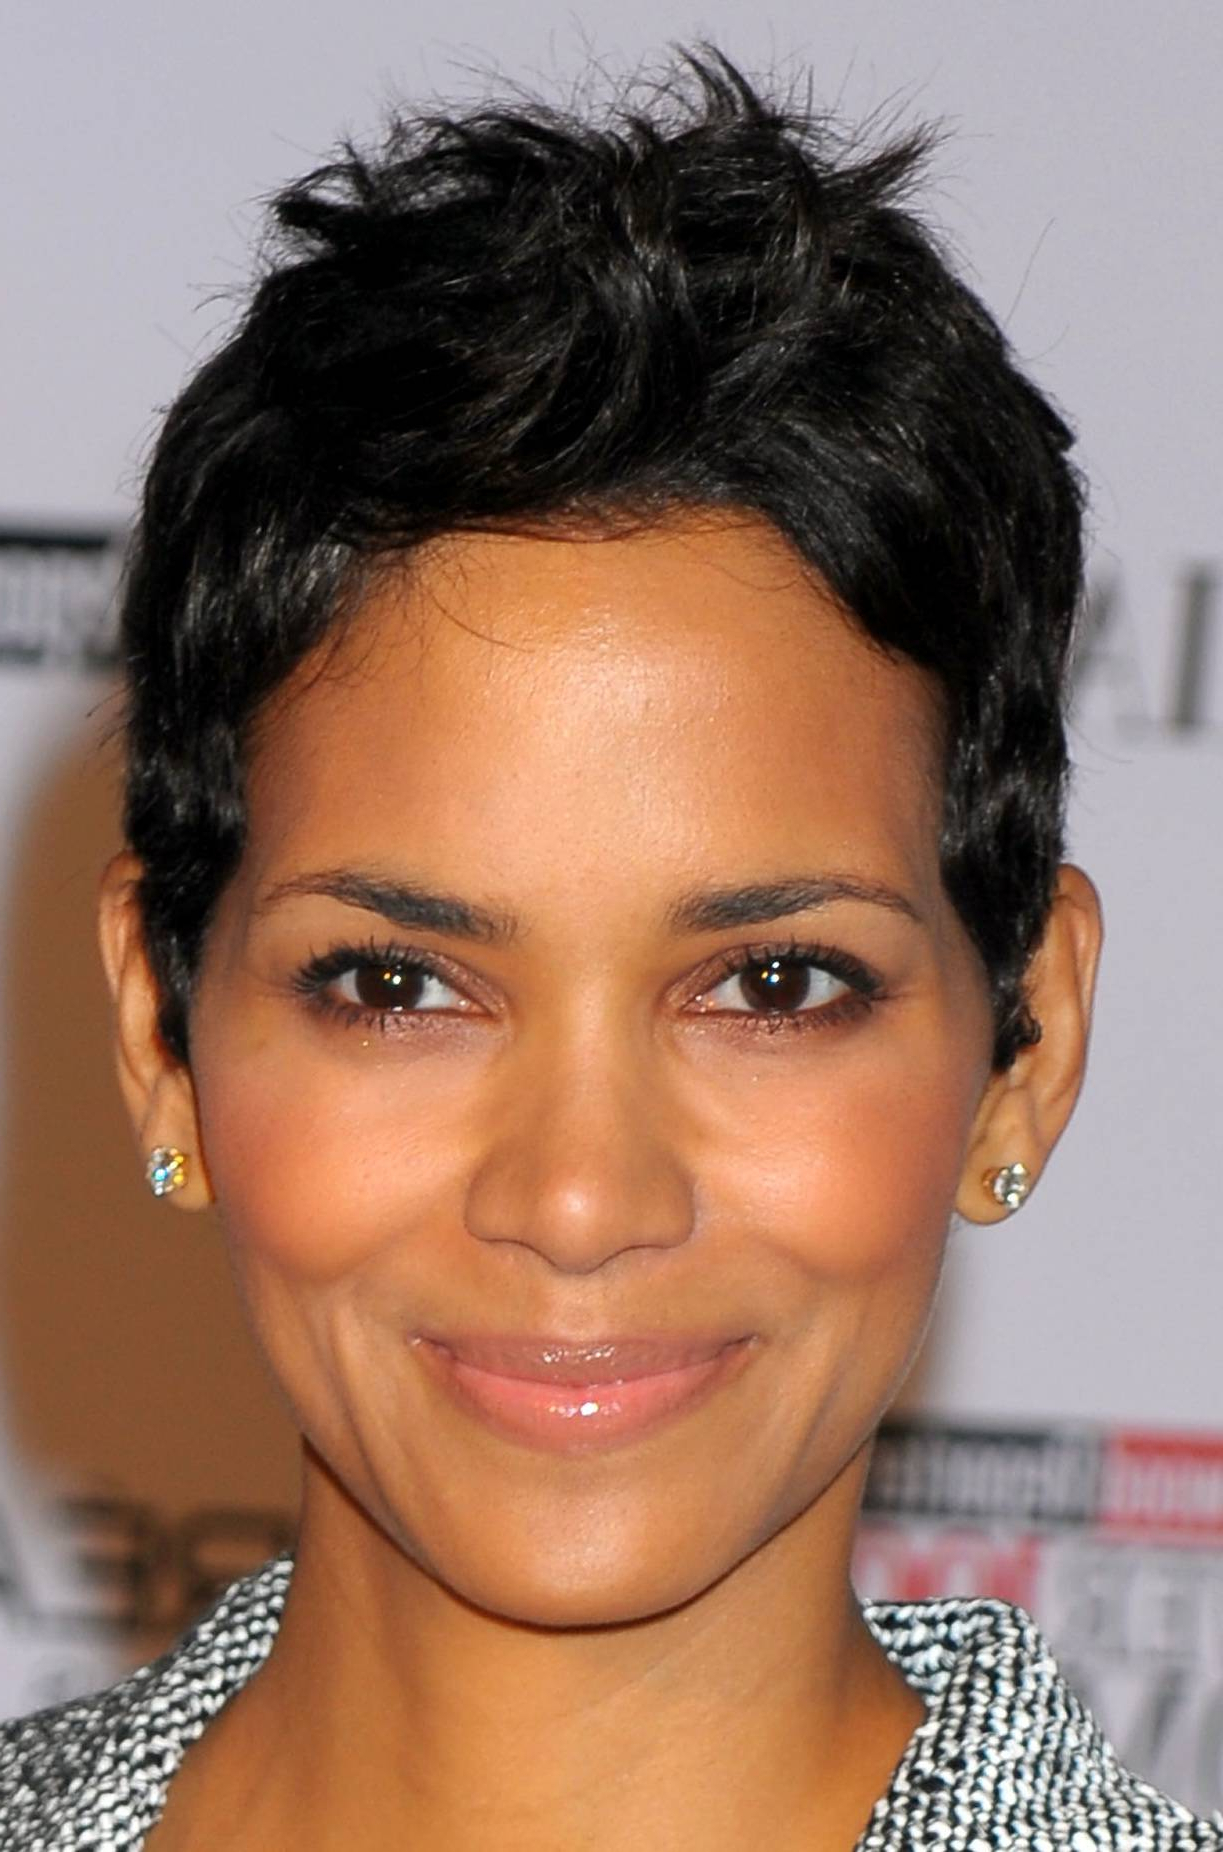 Short Hairstyles For Round Faces Black Women – Hairstyle For Women & Man With Short Haircuts For Black Women With Round Faces (View 2 of 25)